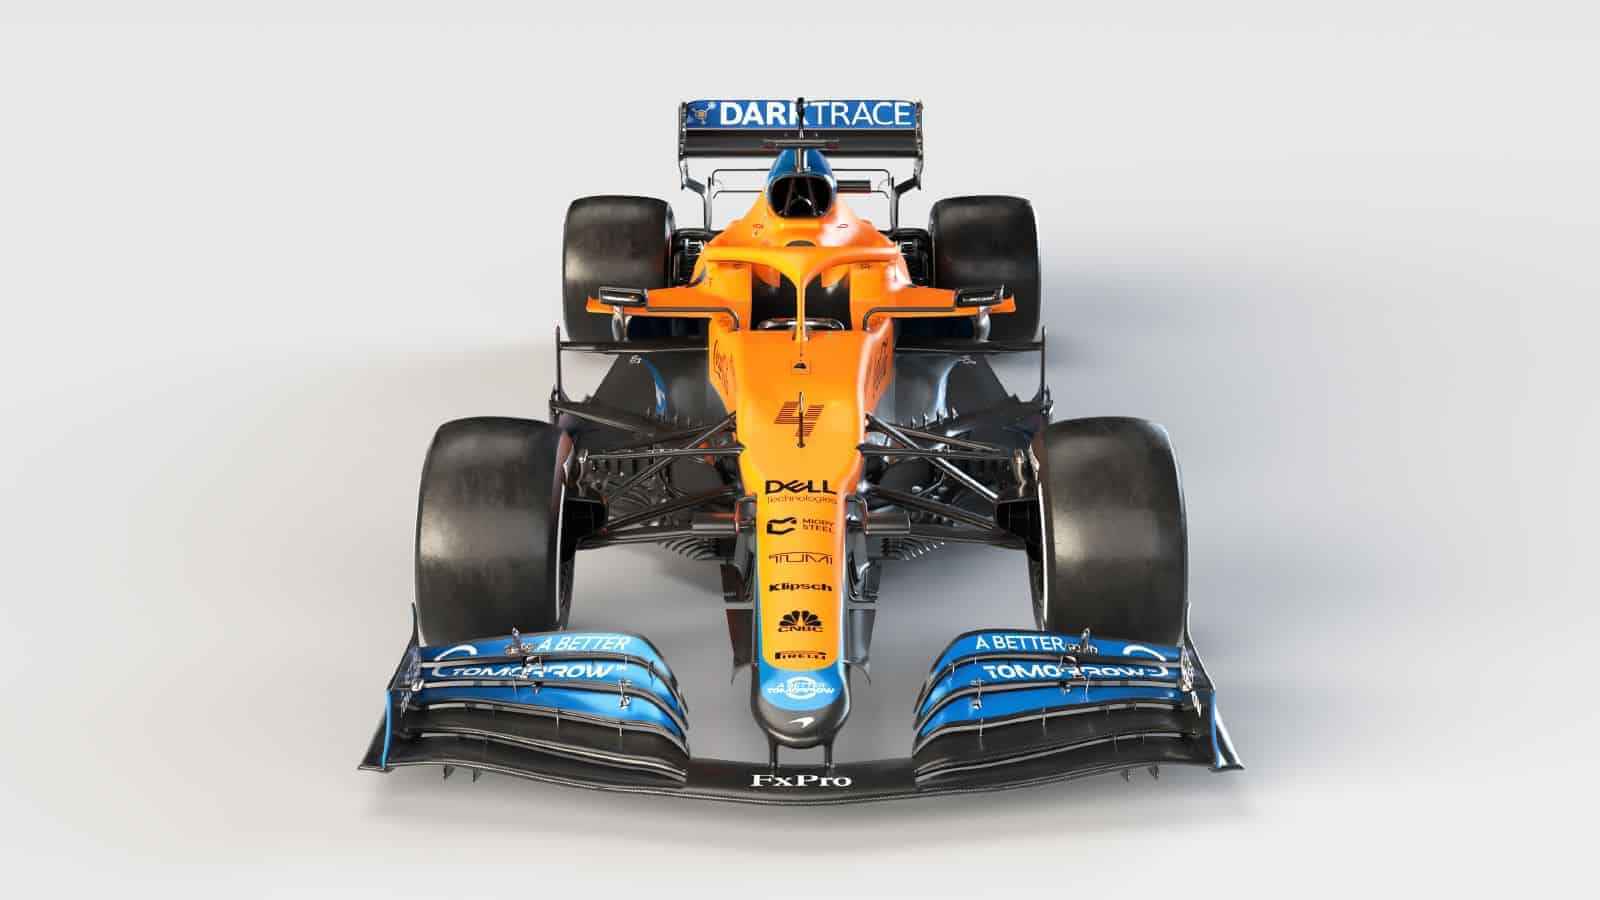 2021 McLaren MCL35M Mercedes launch studio front view frontal Photo McLaren